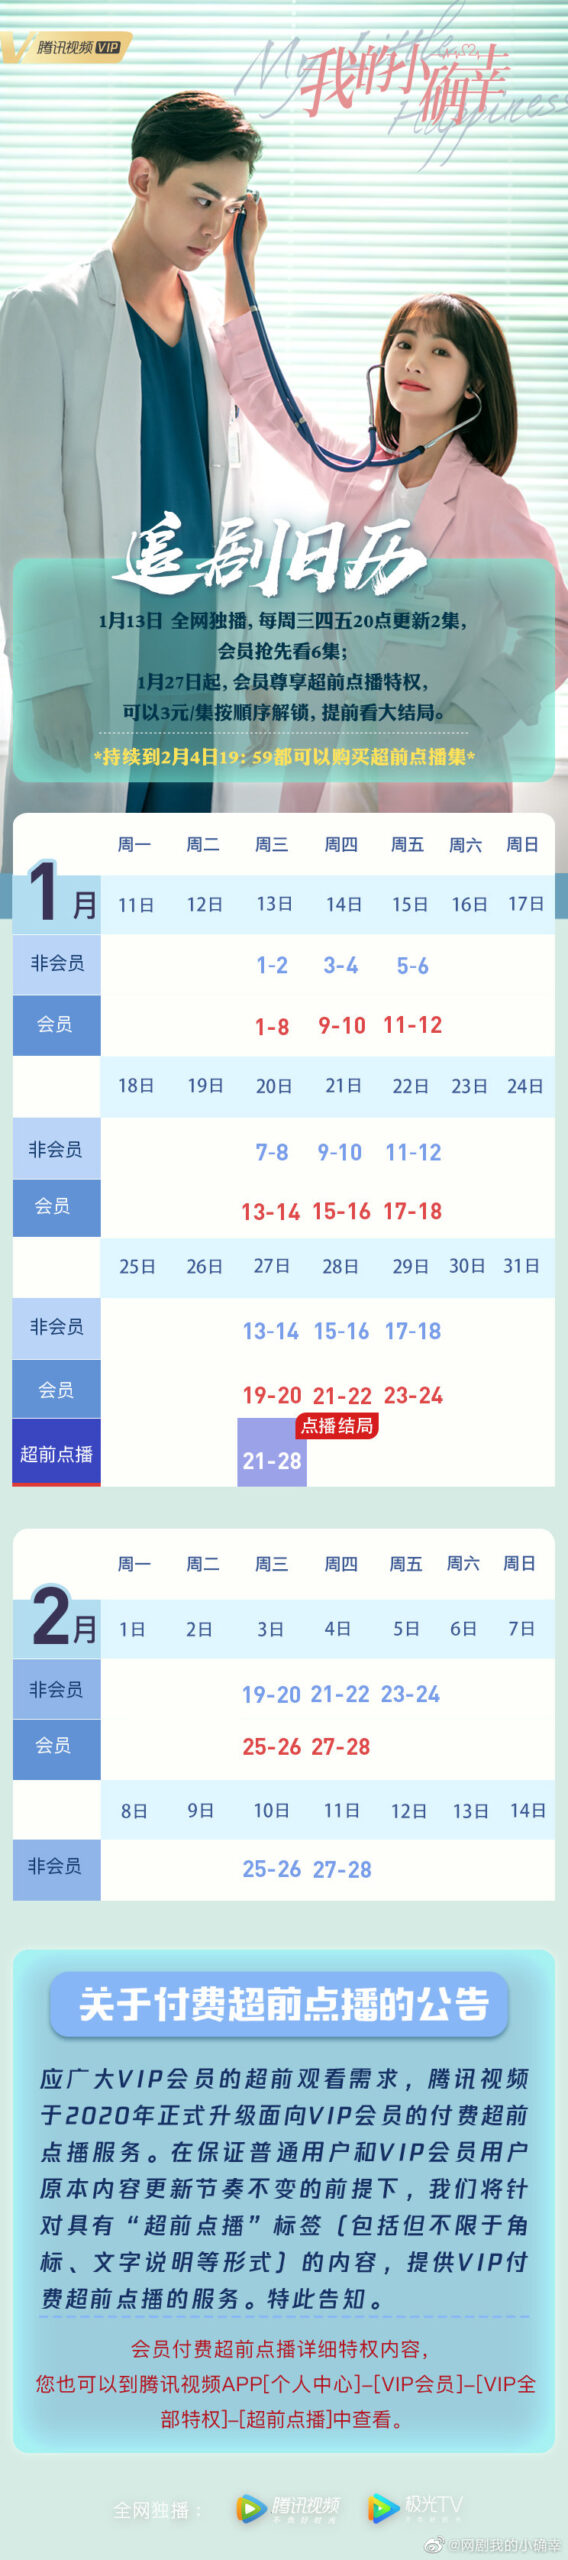 My Little Happiness Chinese Drama Airing Calendar